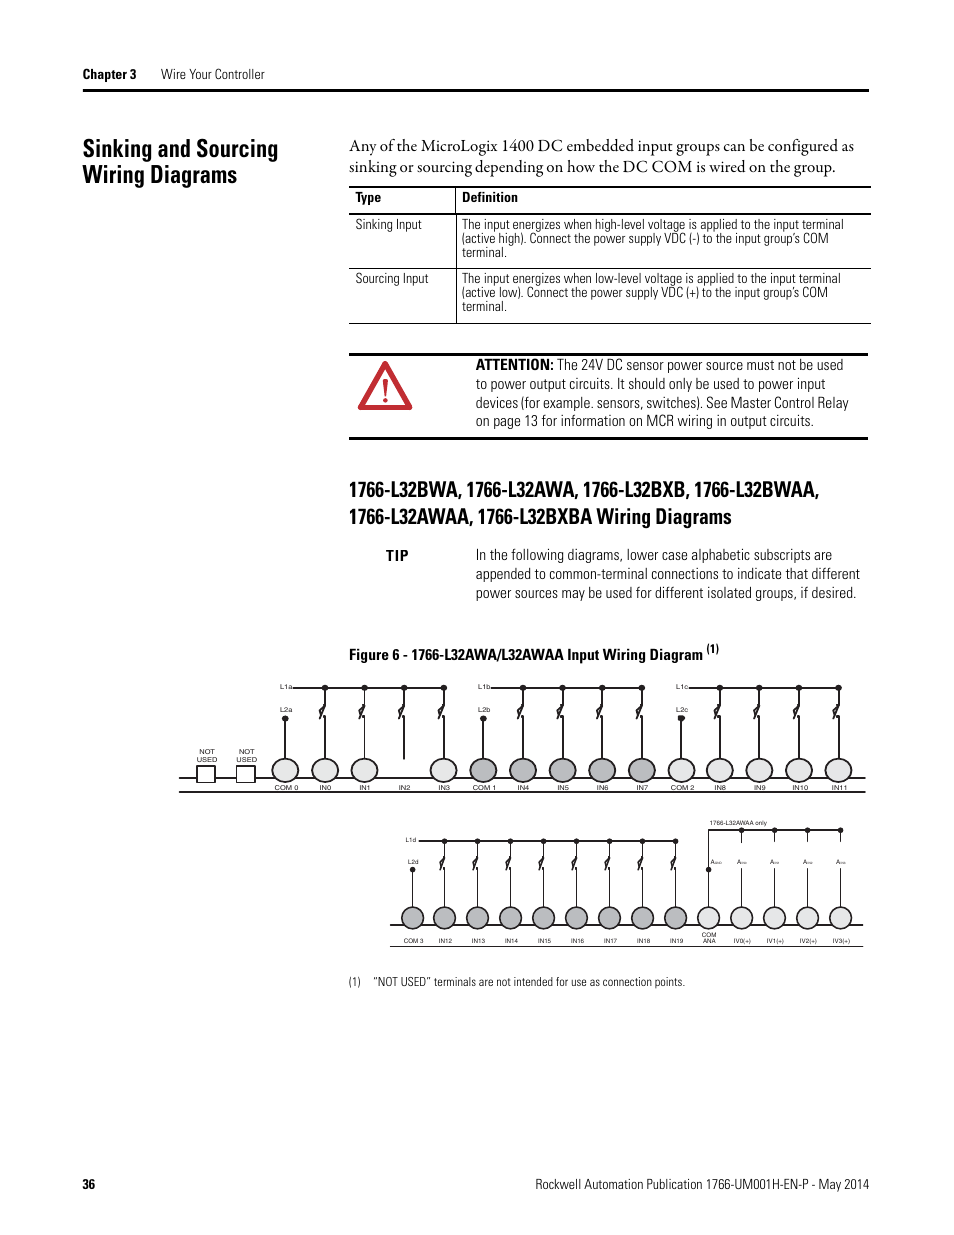 Sinking And Sourcing Wiring Diagrams Rockwell Automation 1766 Lxxxx Micrologix 1400 Programmable Controllers User Manual User Manual Page 50 406